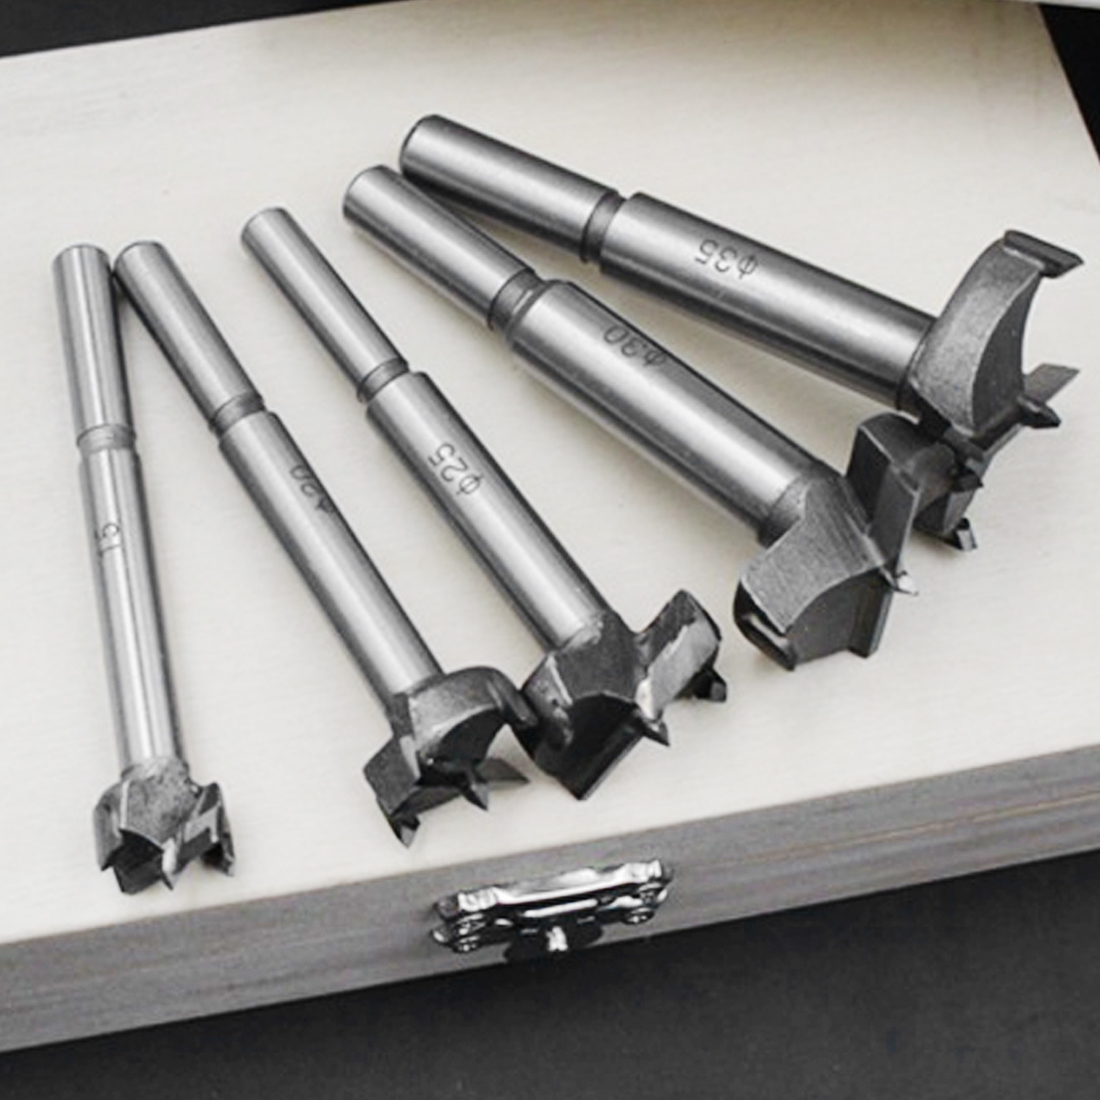 15mm-35mm Forstner Drill Bits High Carbon Steel Forstner Wood Drill Bit Self Centering Hole Saw Cutter Woodworking Tools Set